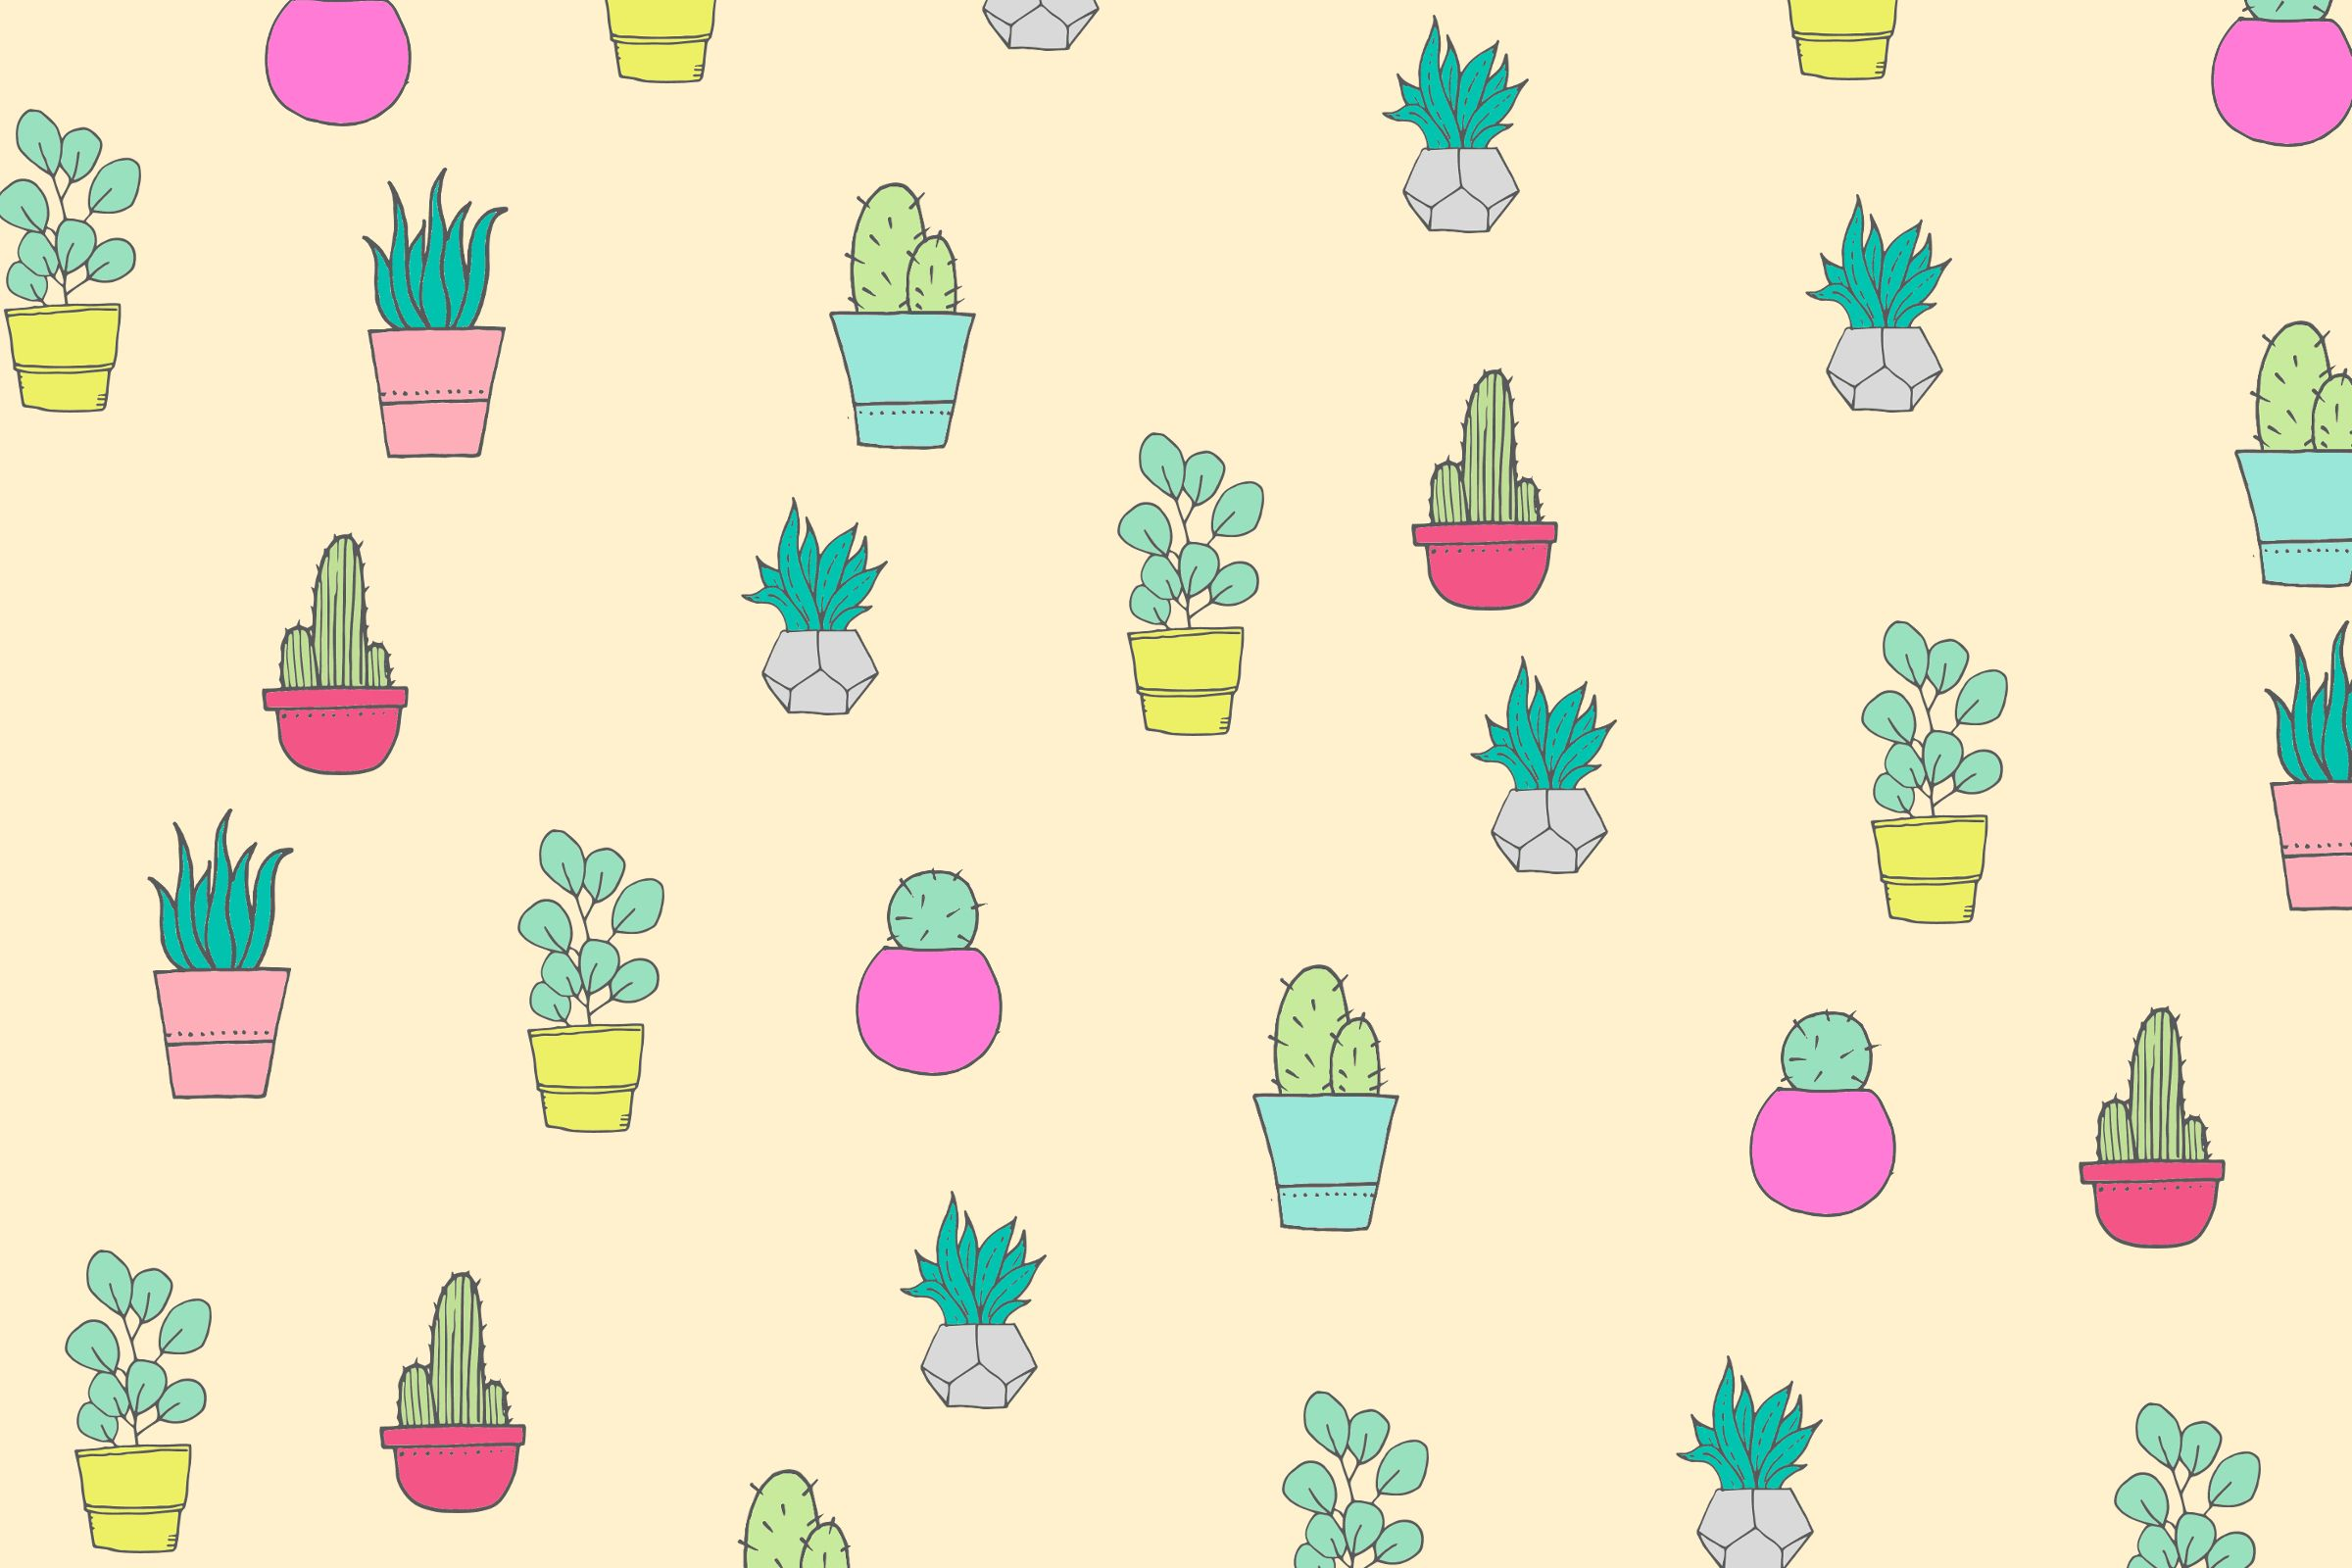 2400x1600 FREE CACTUS AND SUCCULENT WALLPAPERS FOR YOUR DESKTOP, TABLET AND ...